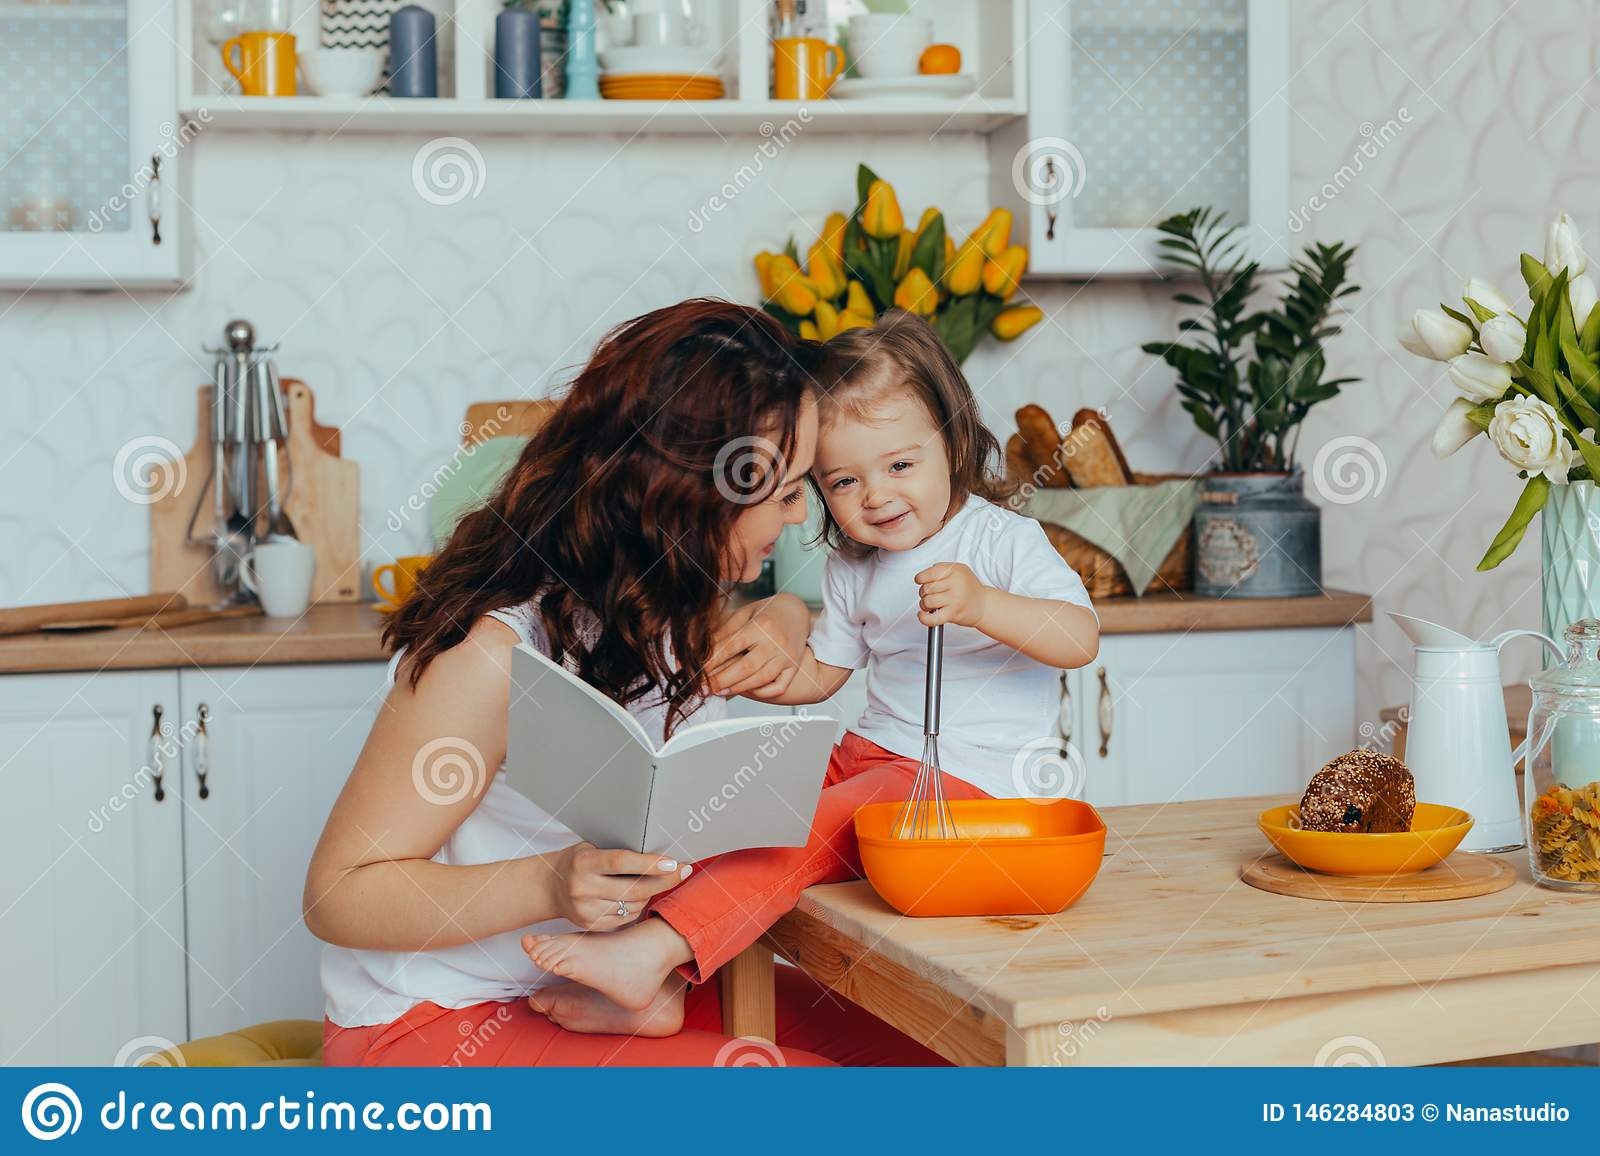 Attractive young woman and her little cute daughter are cooking on kitchen